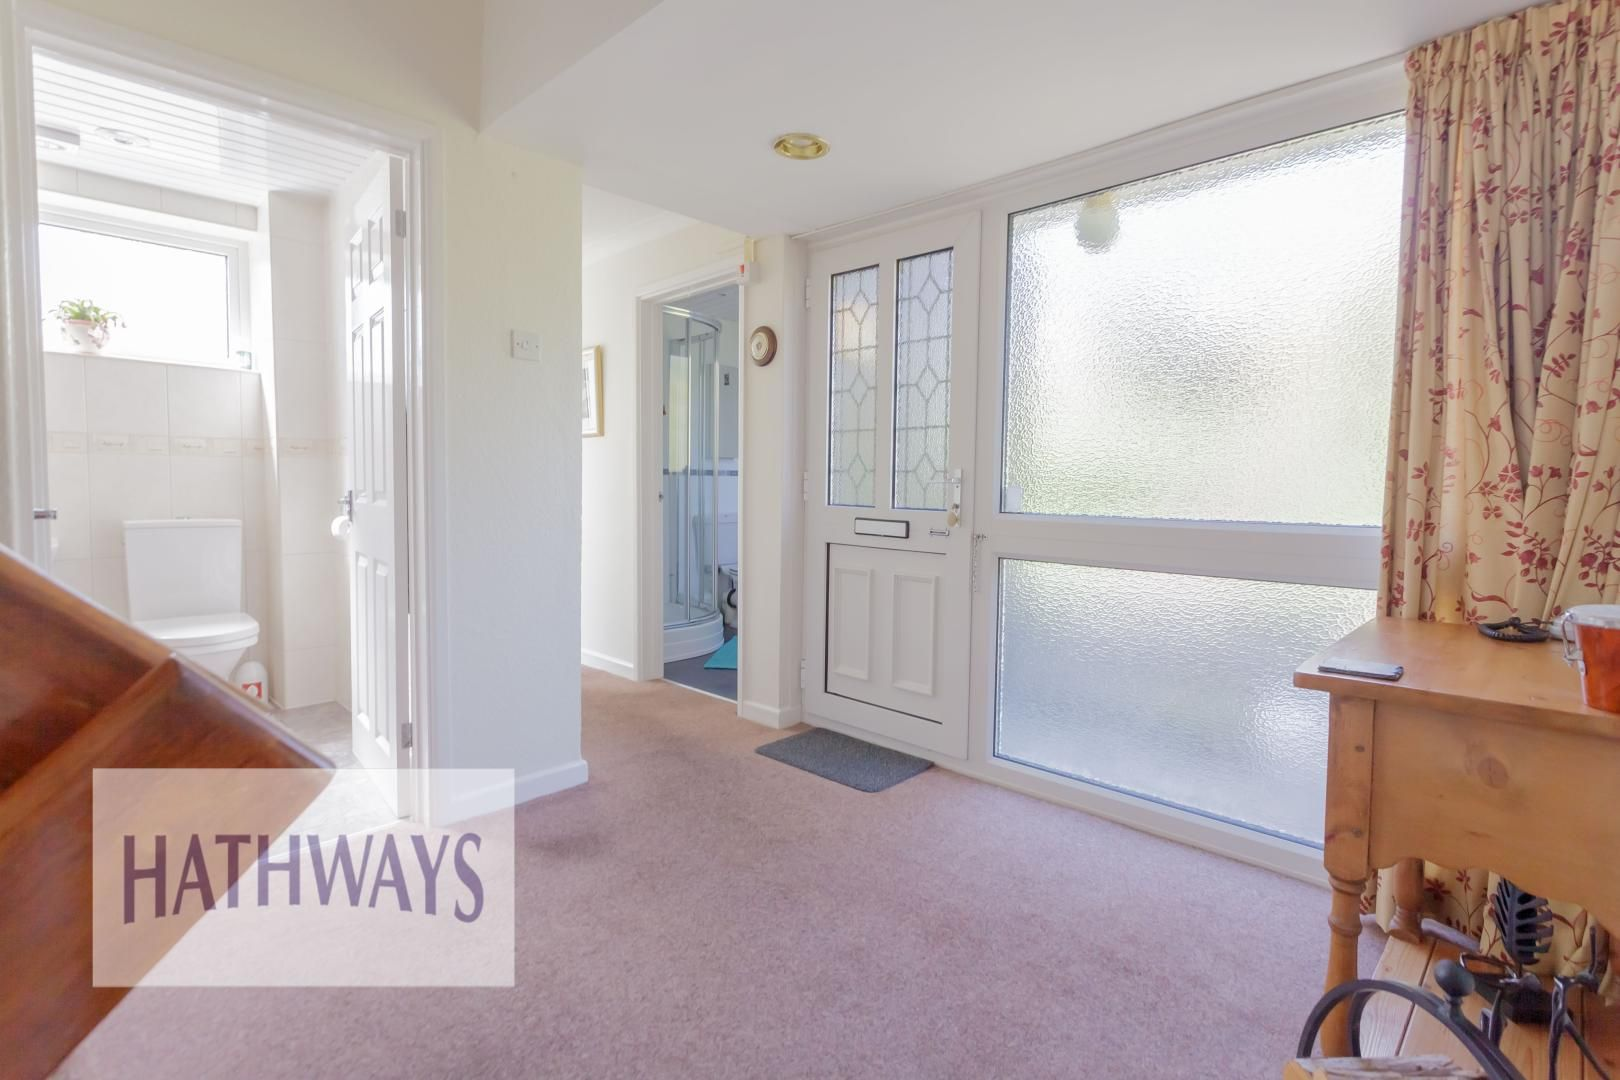 4 bed house for sale in Greenfield 4